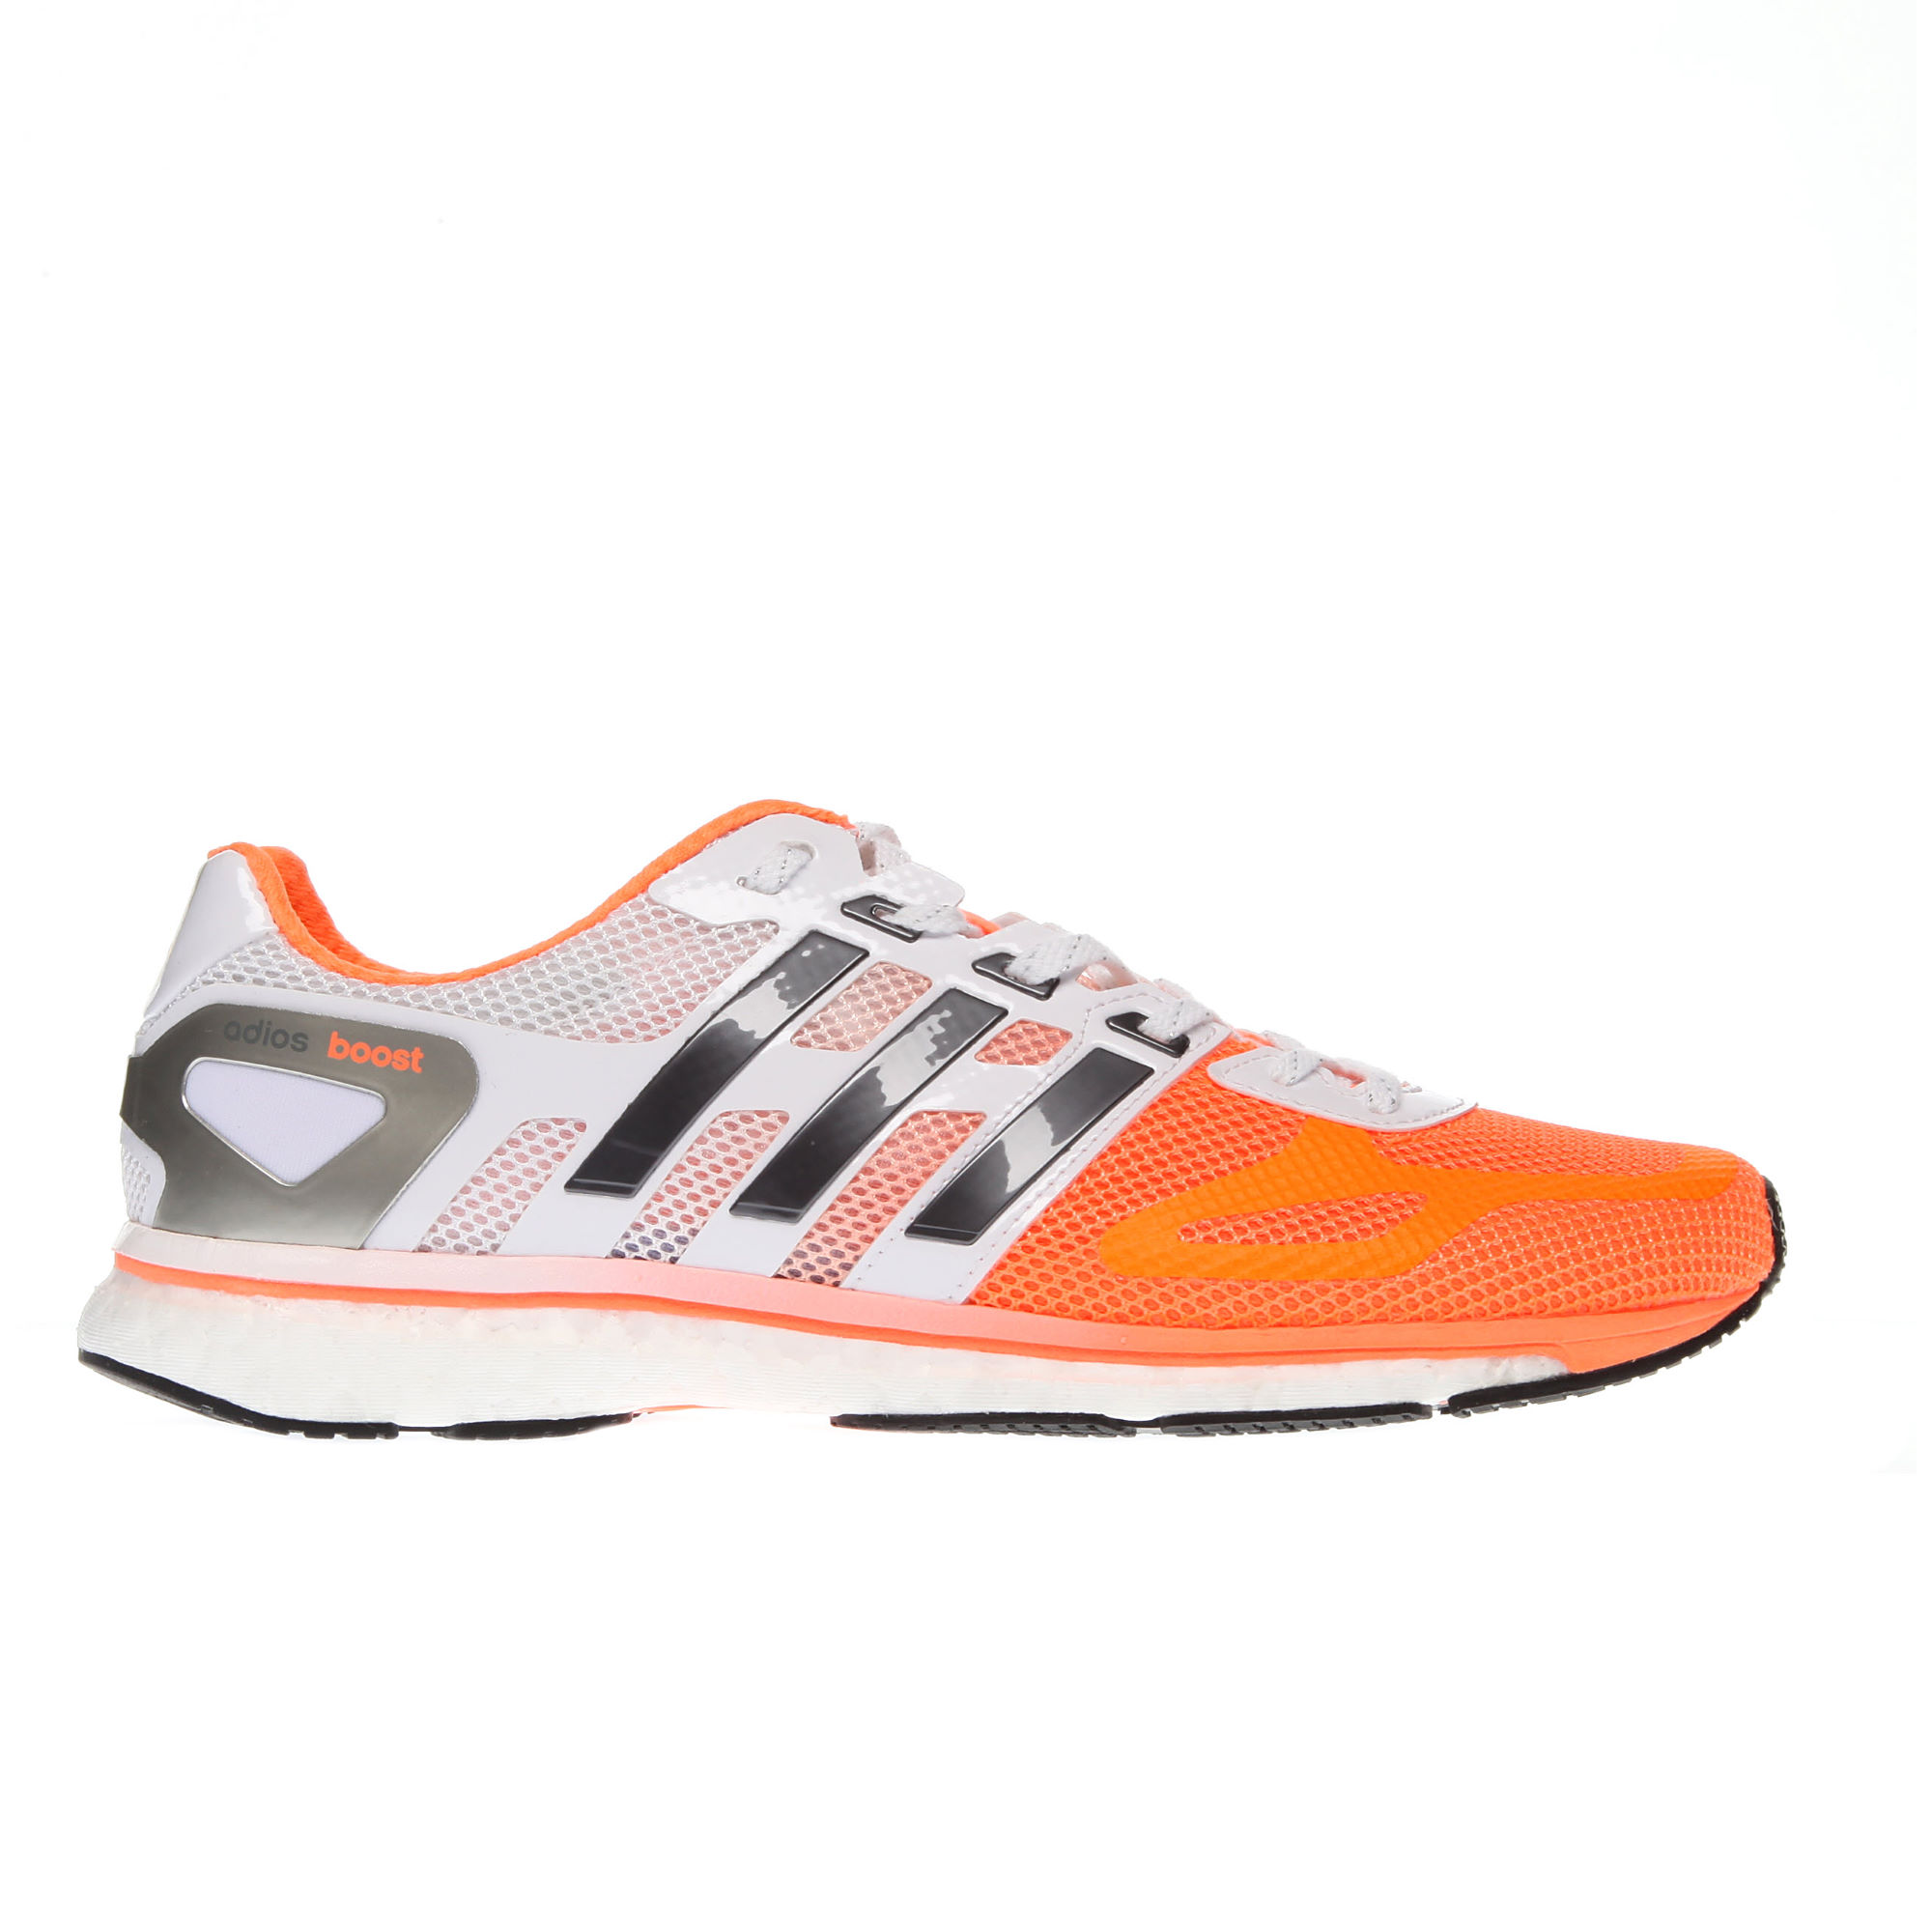 wiggle adidas women 39 s adizero adios boost shoes ss14 racing running shoes. Black Bedroom Furniture Sets. Home Design Ideas